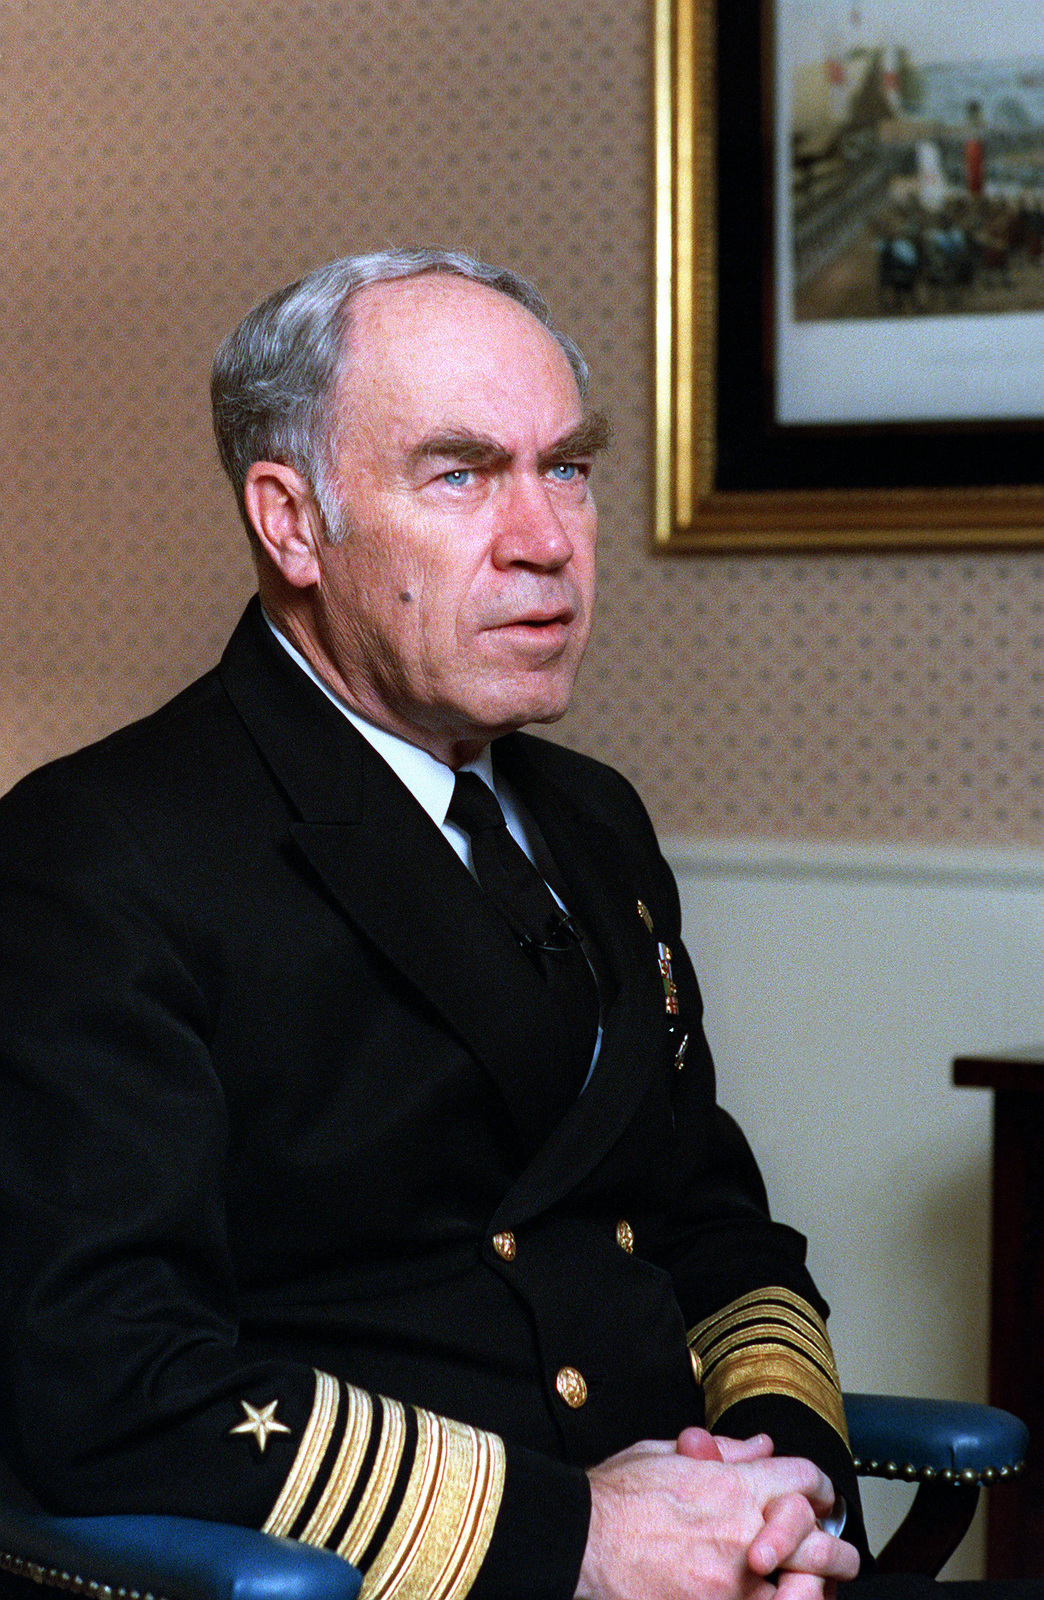 ADM Frank B. Kelso II, chief of naval operations, answers questions during an interview at the Pentagon